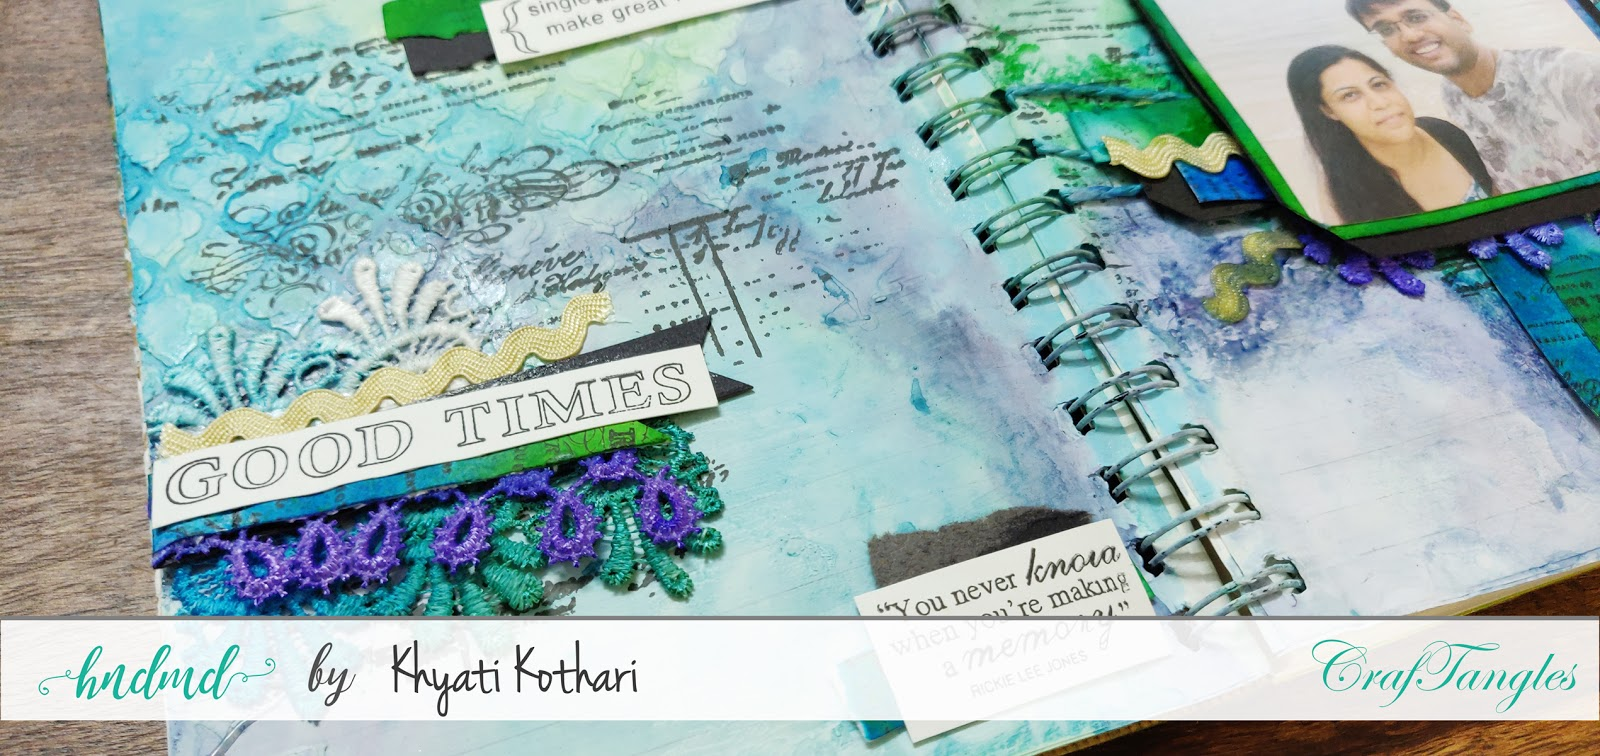 First attempt at Art Journal page using CrafTangles products 2